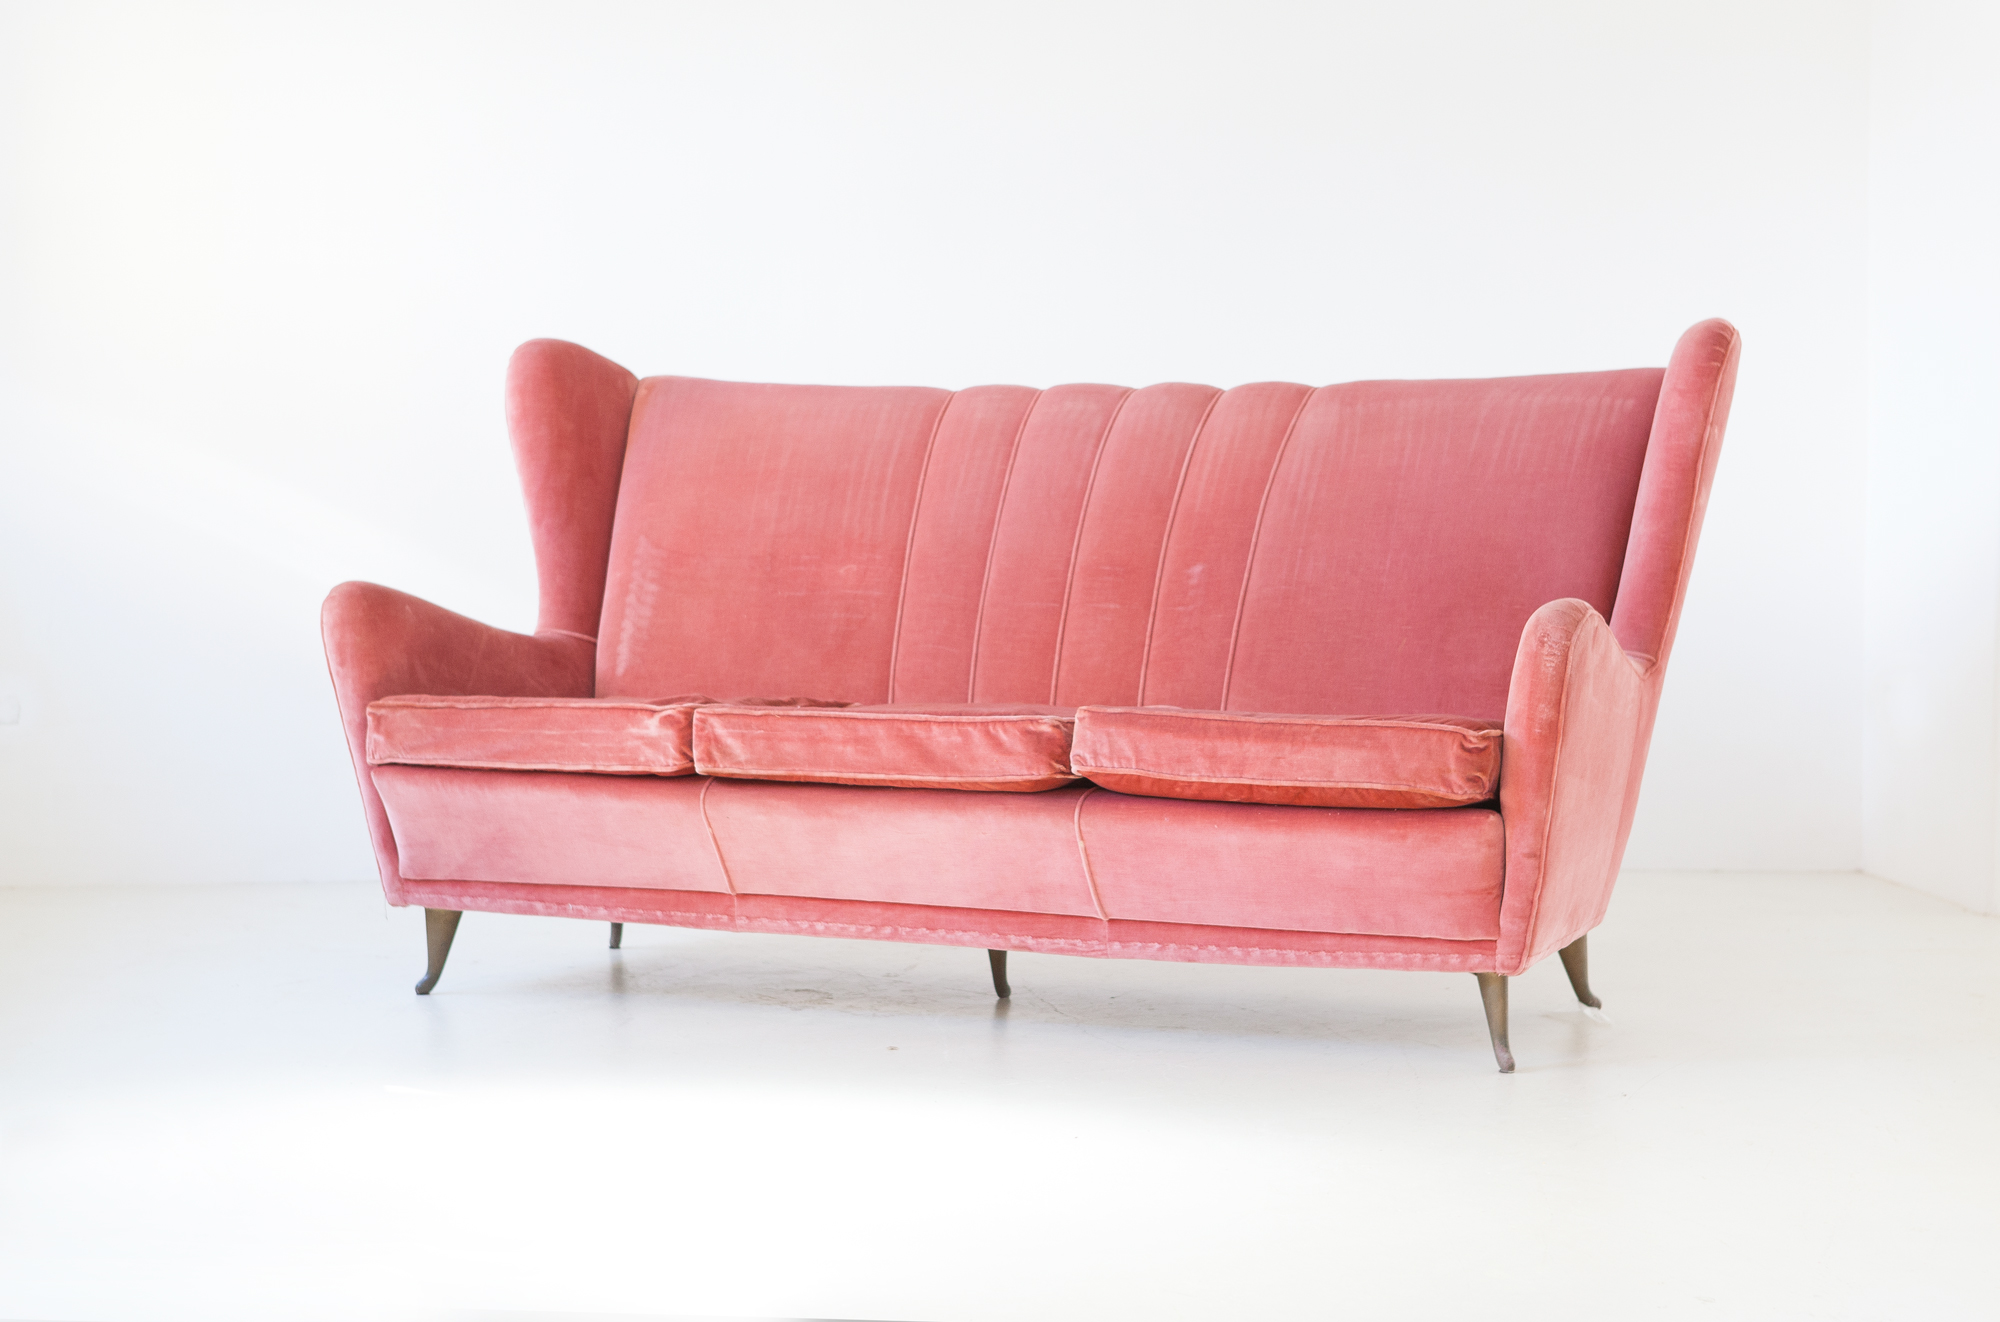 1950s--pink-velvet-three-seater-sofa-by-ISA-4-se324